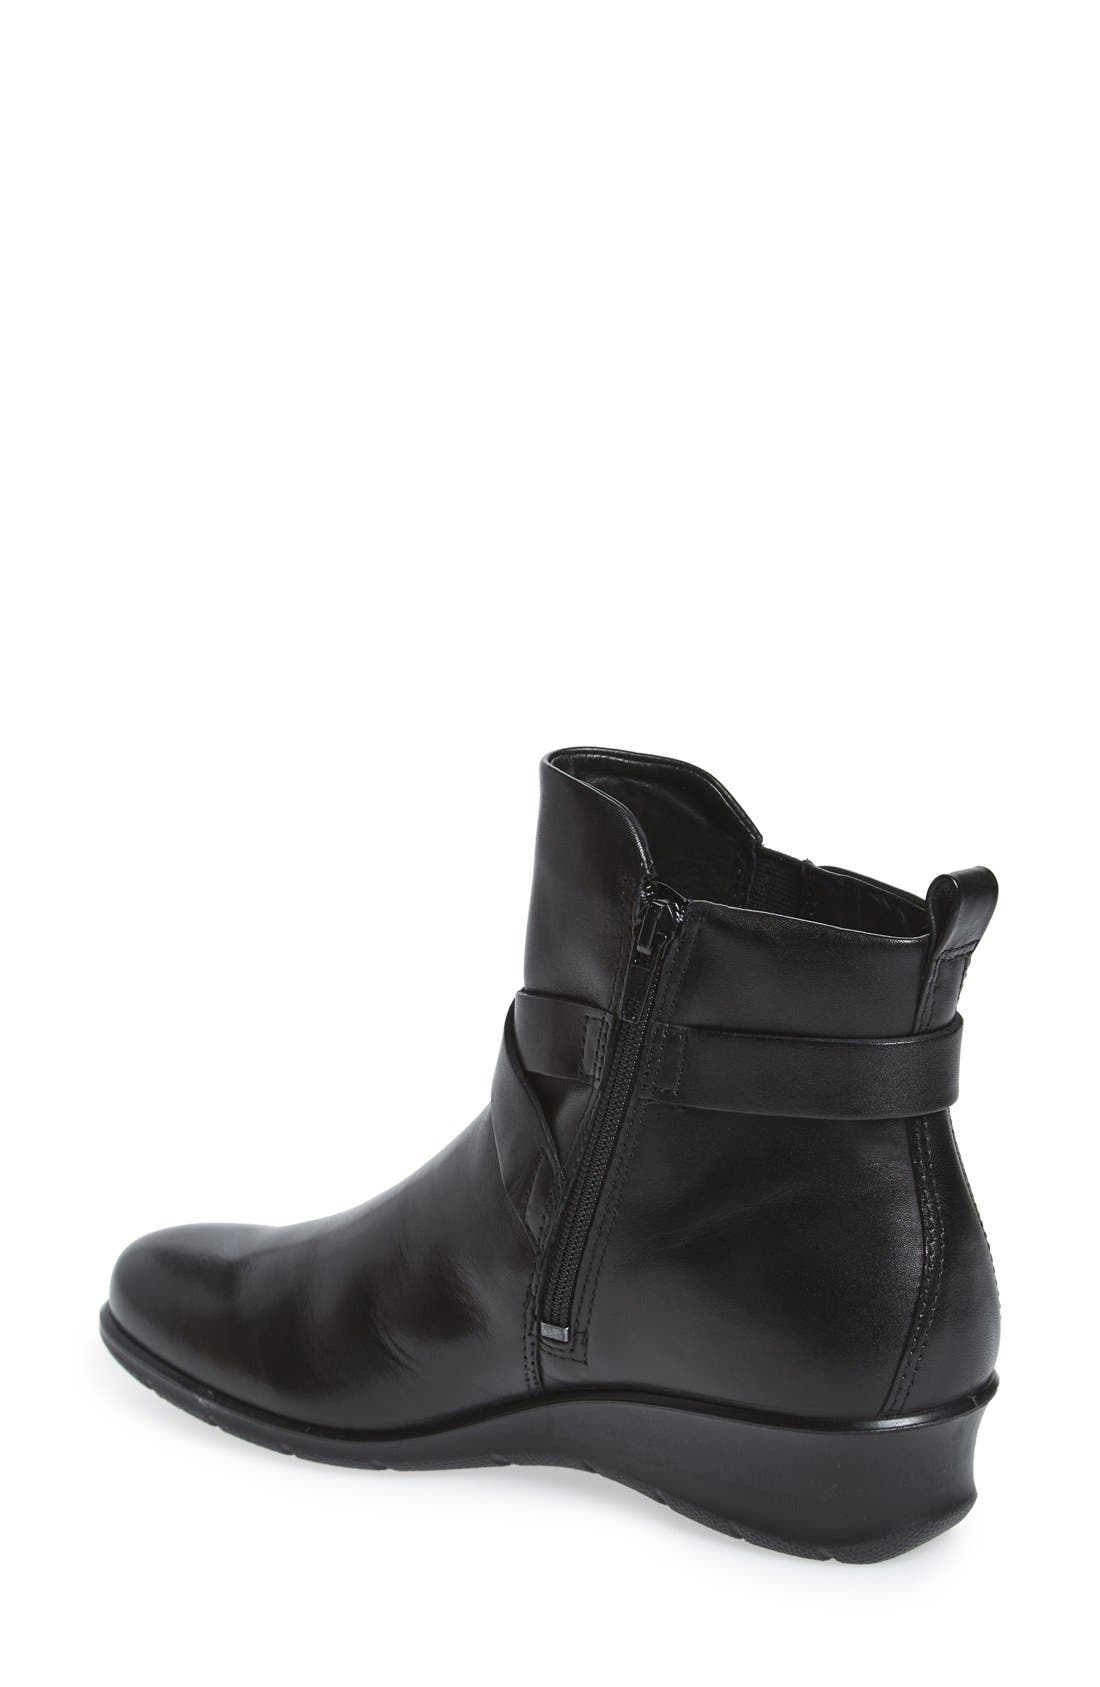 'Felicia' Strappy Zip-Up Wedge Bootie,                             Alternate thumbnail 2, color,                             008